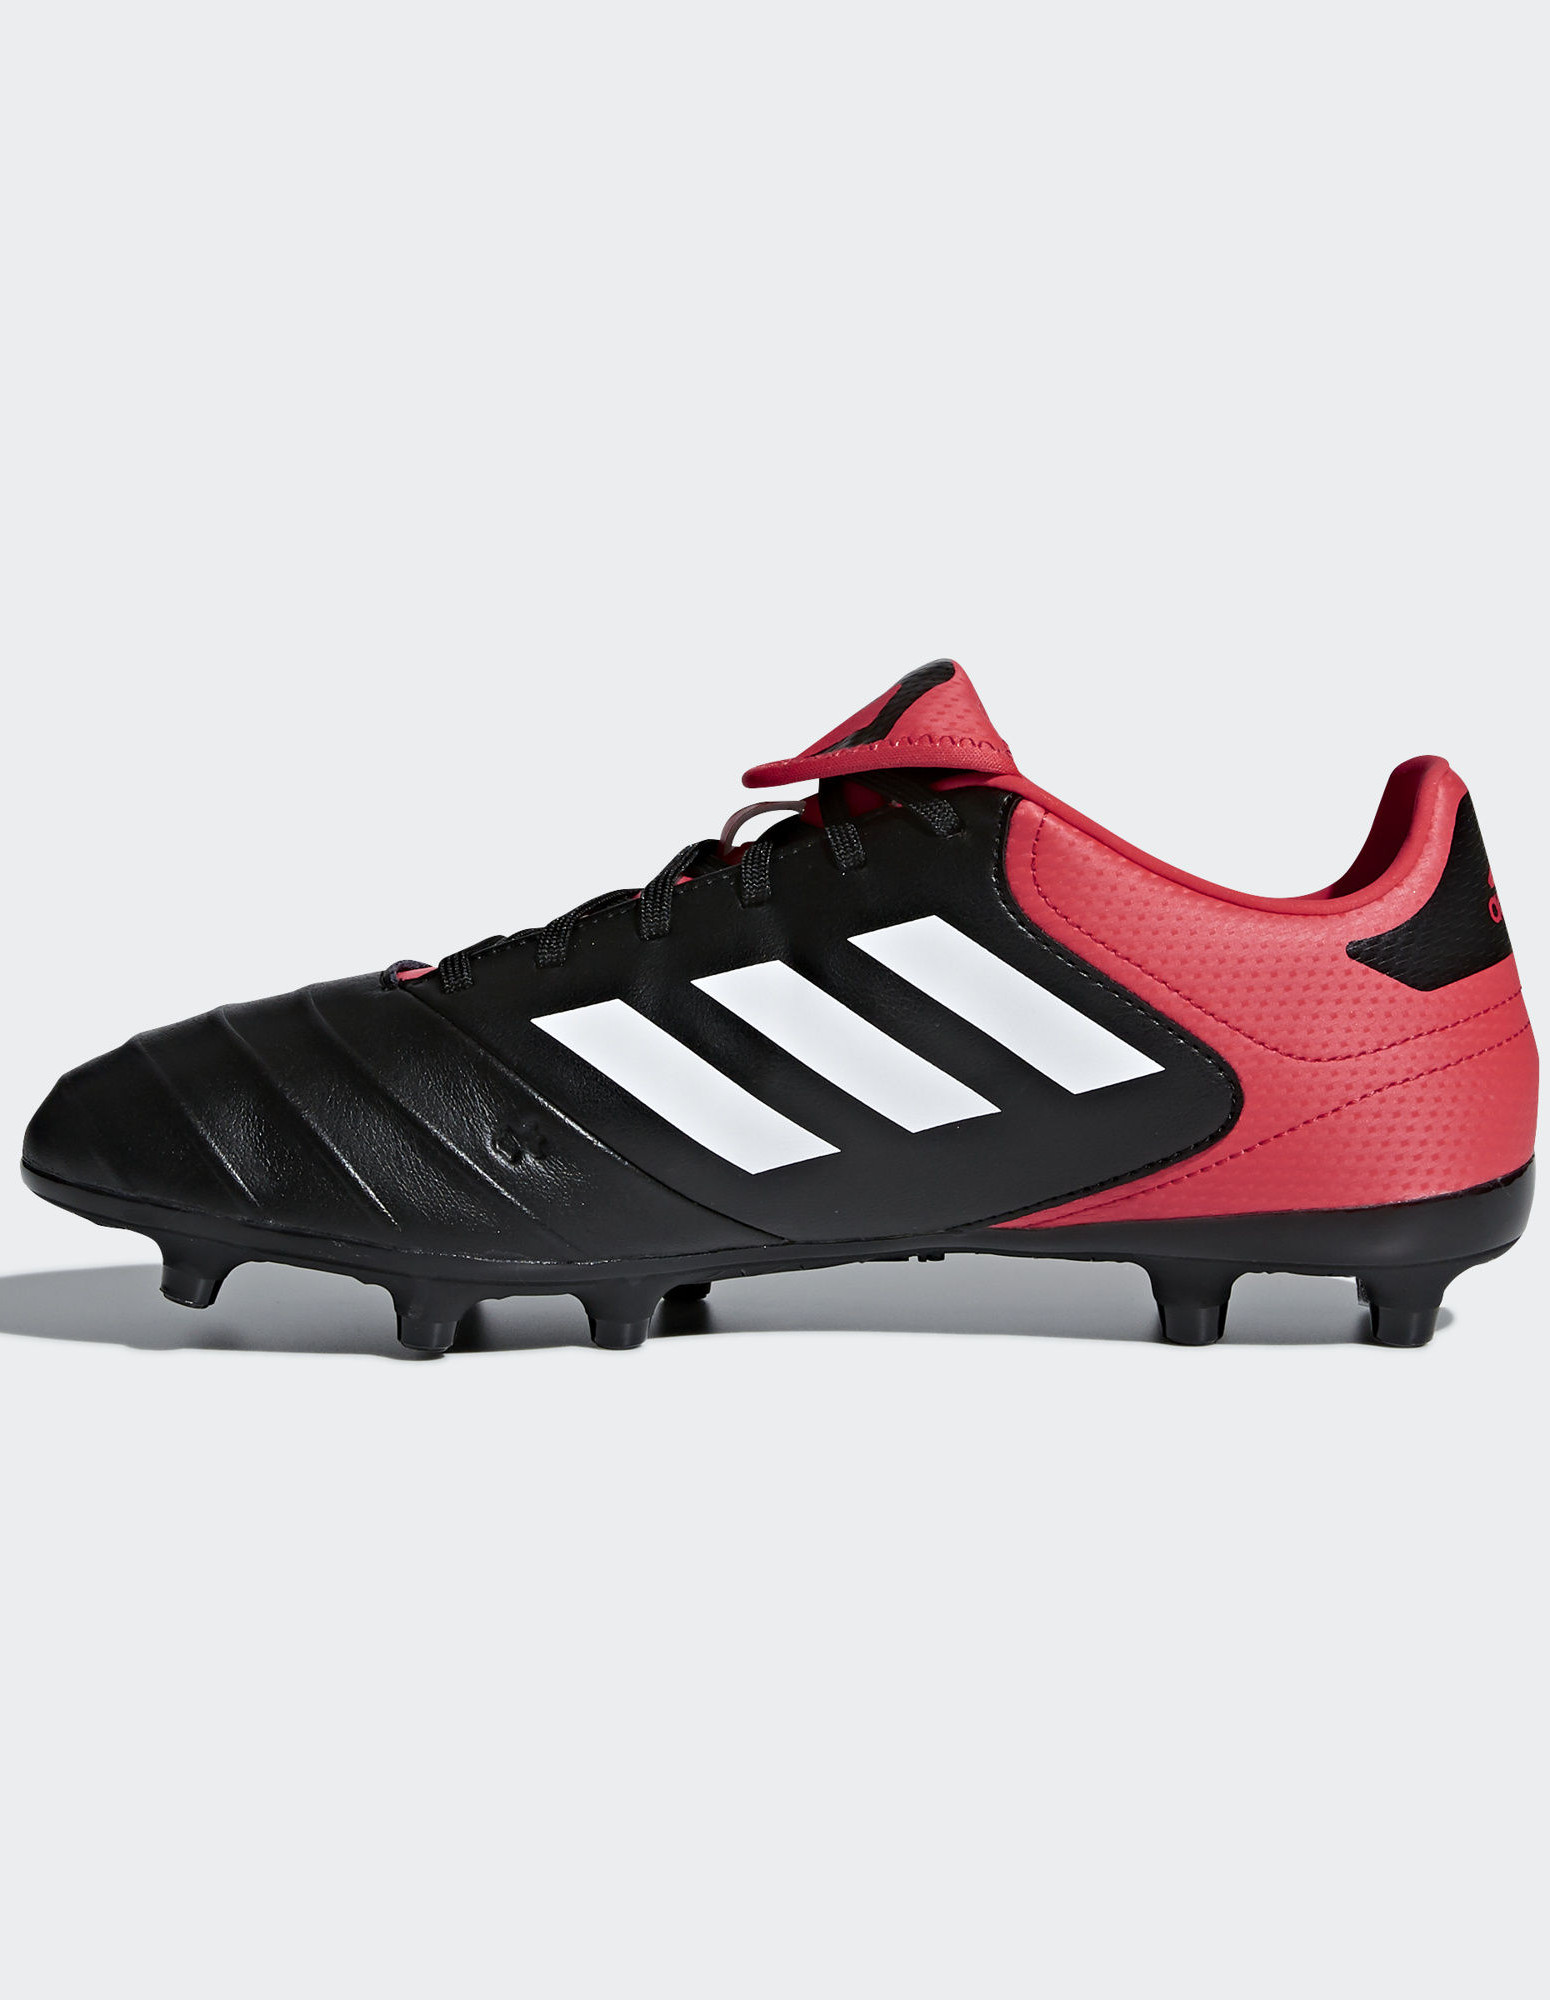 separation shoes 9d79a 0846a Football shoes Adidas Scarpe Calcio Copa 18.3 FG Mundial Nero Vera Pelle 3  3 di 9 ...